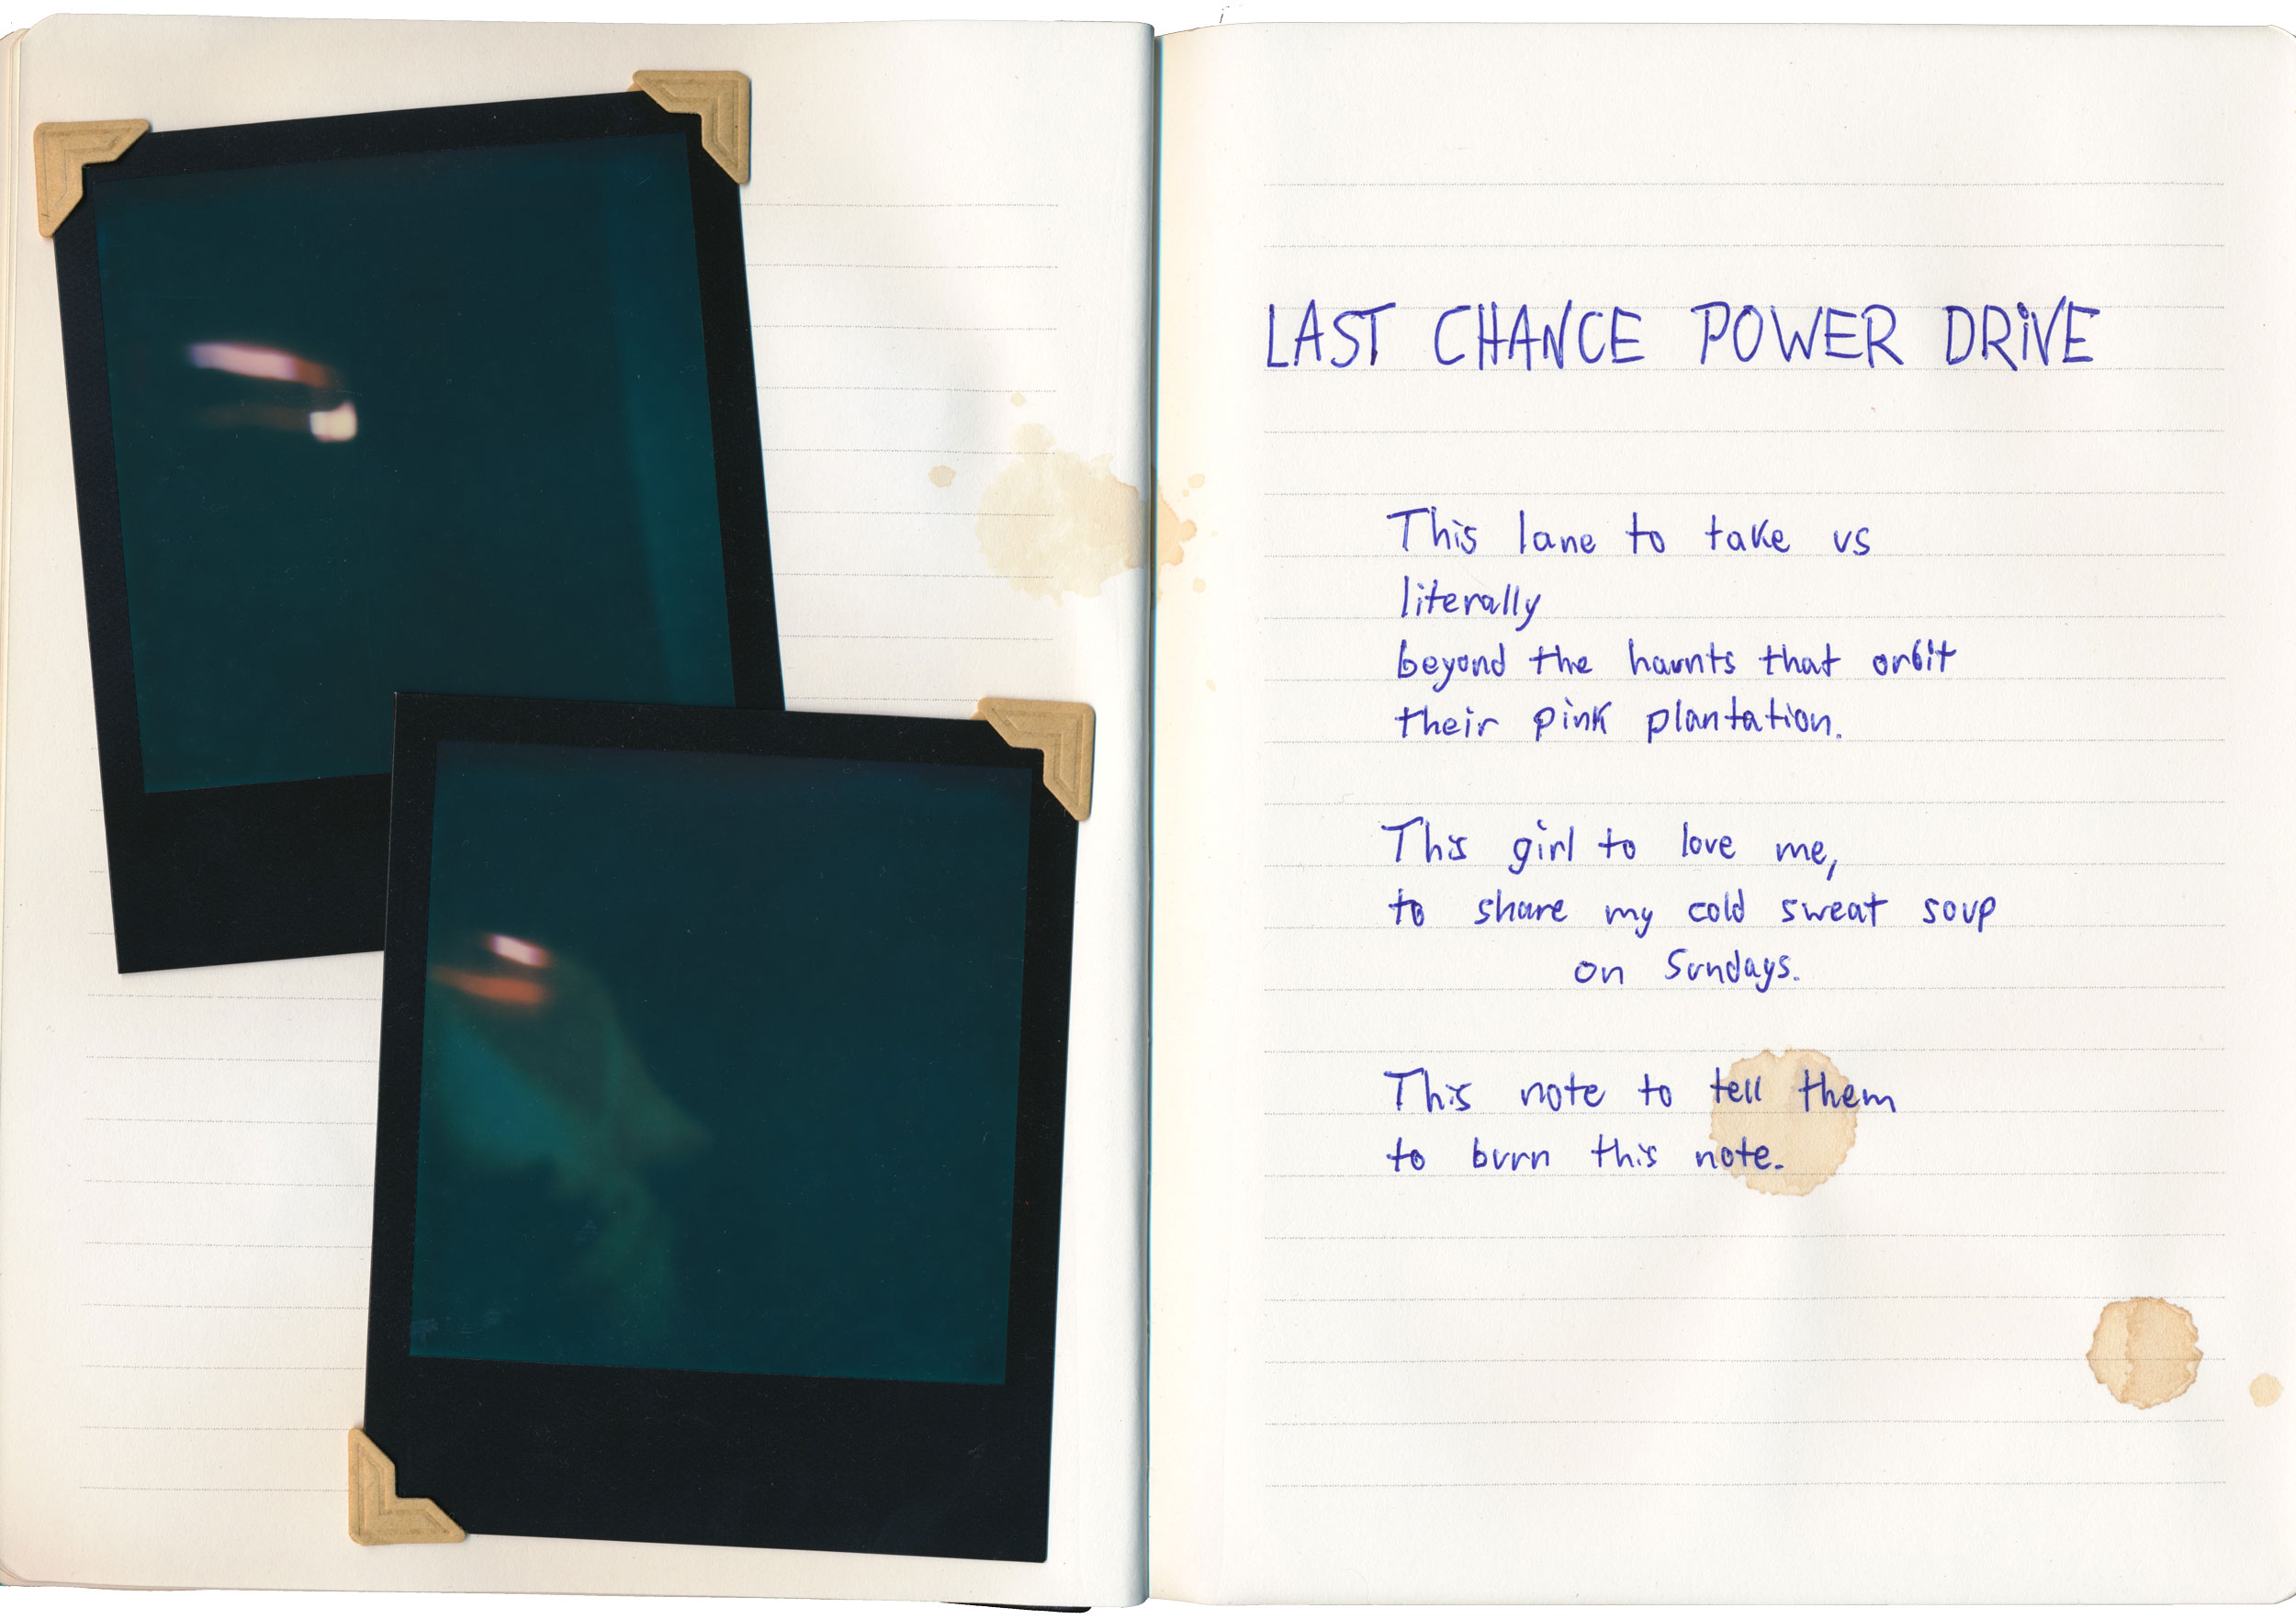 Archive of our collapse 9 - Last chance power drive.jpg